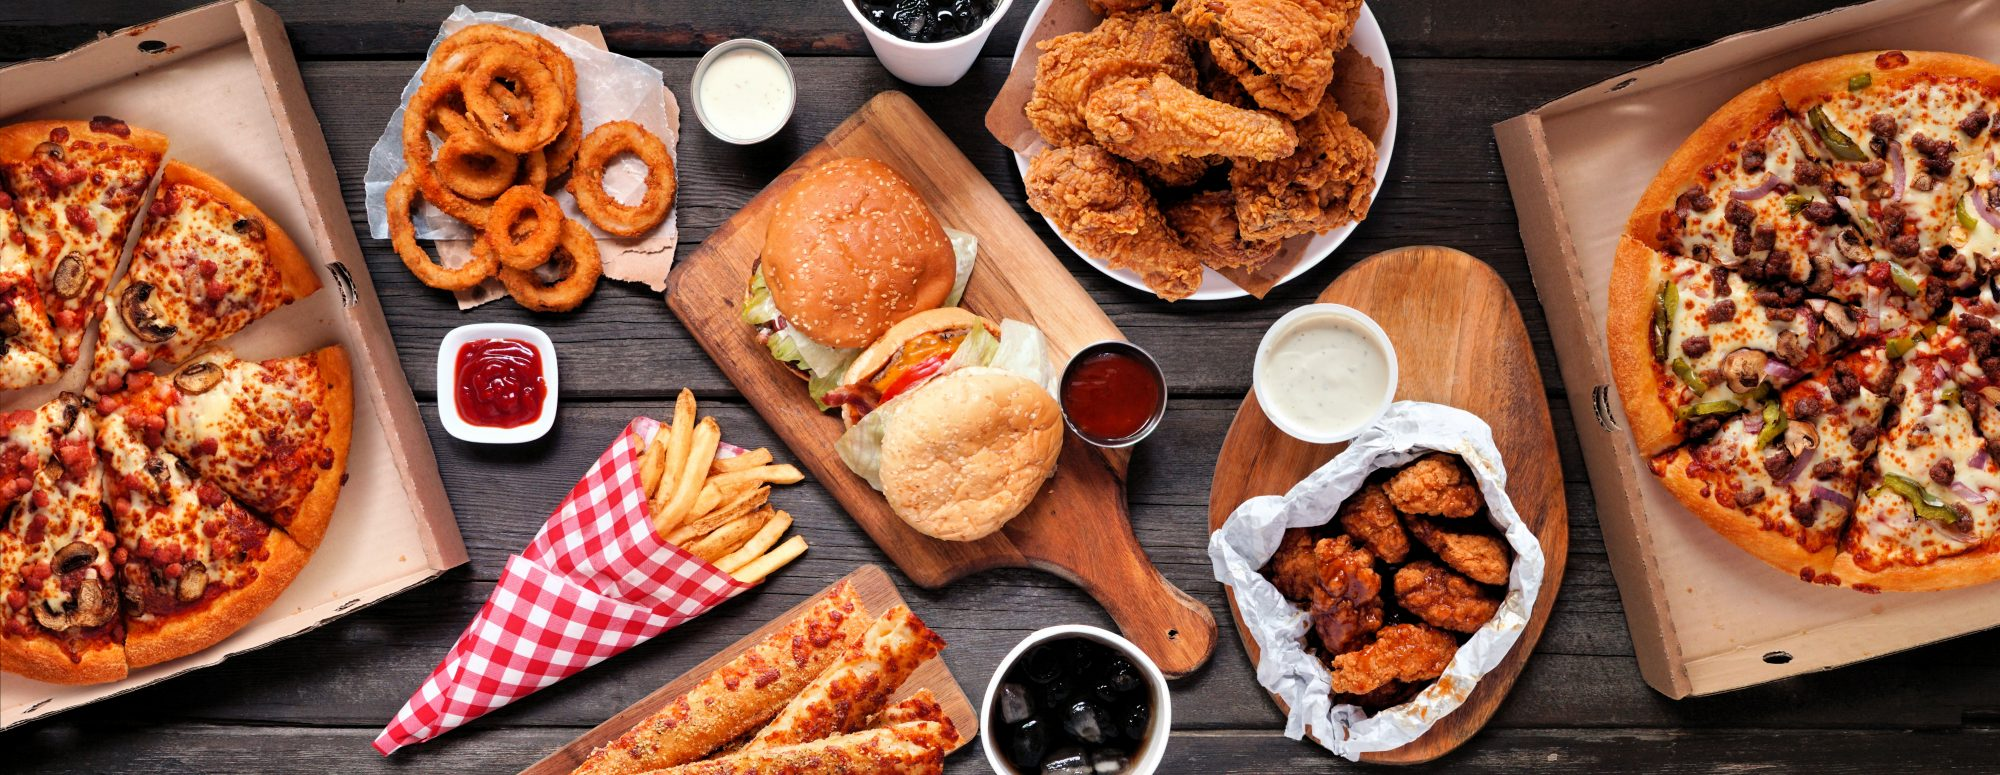 assorted take out junk food on wood table